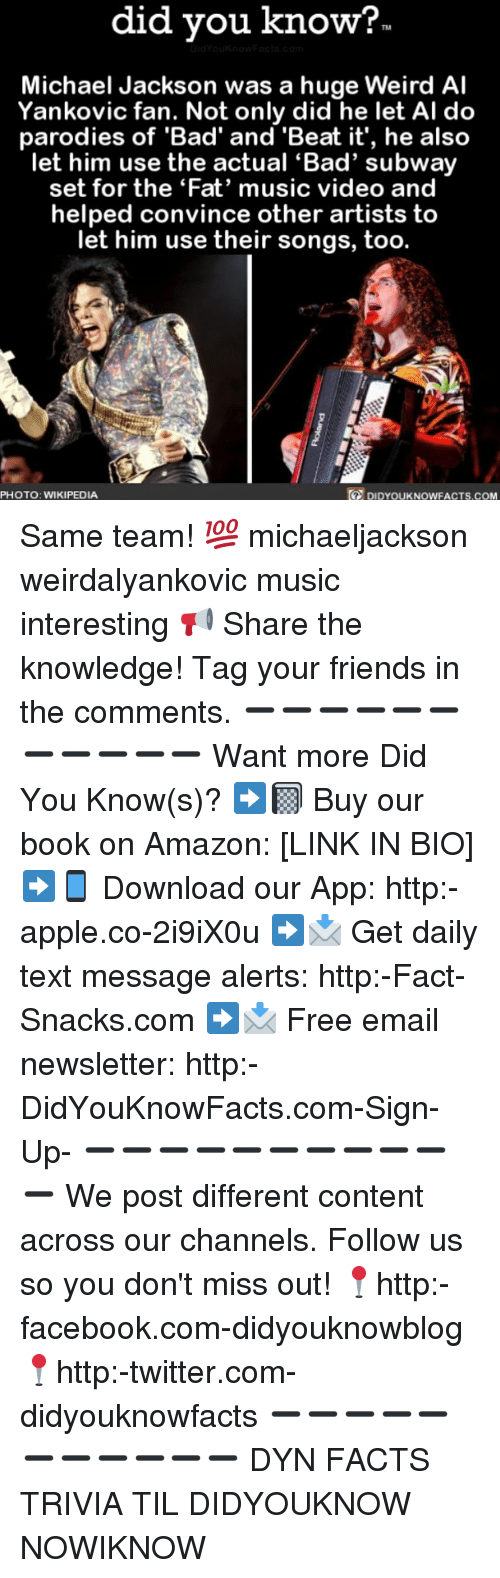 Amazon, Apple, and Bad: did you know?  TM  Michael Jackson was a huge Weird Al  Yankovic fan. Not only did he let Al do  parodies of 'Bad' and 'Beat it', he also  let him use the actual 'Bad' subway  set for the 'Fat' music video and  helped convince other artists to  let him use their songs, too.  PHOTO: WIKIPEDIA  DIDYOUK NOWFACTS.COM Same team! 💯 michaeljackson weirdalyankovic music interesting 📢 Share the knowledge! Tag your friends in the comments. ➖➖➖➖➖➖➖➖➖➖➖ Want more Did You Know(s)? ➡📓 Buy our book on Amazon: [LINK IN BIO] ➡📱 Download our App: http:-apple.co-2i9iX0u ➡📩 Get daily text message alerts: http:-Fact-Snacks.com ➡📩 Free email newsletter: http:-DidYouKnowFacts.com-Sign-Up- ➖➖➖➖➖➖➖➖➖➖➖ We post different content across our channels. Follow us so you don't miss out! 📍http:-facebook.com-didyouknowblog 📍http:-twitter.com-didyouknowfacts ➖➖➖➖➖➖➖➖➖➖➖ DYN FACTS TRIVIA TIL DIDYOUKNOW NOWIKNOW